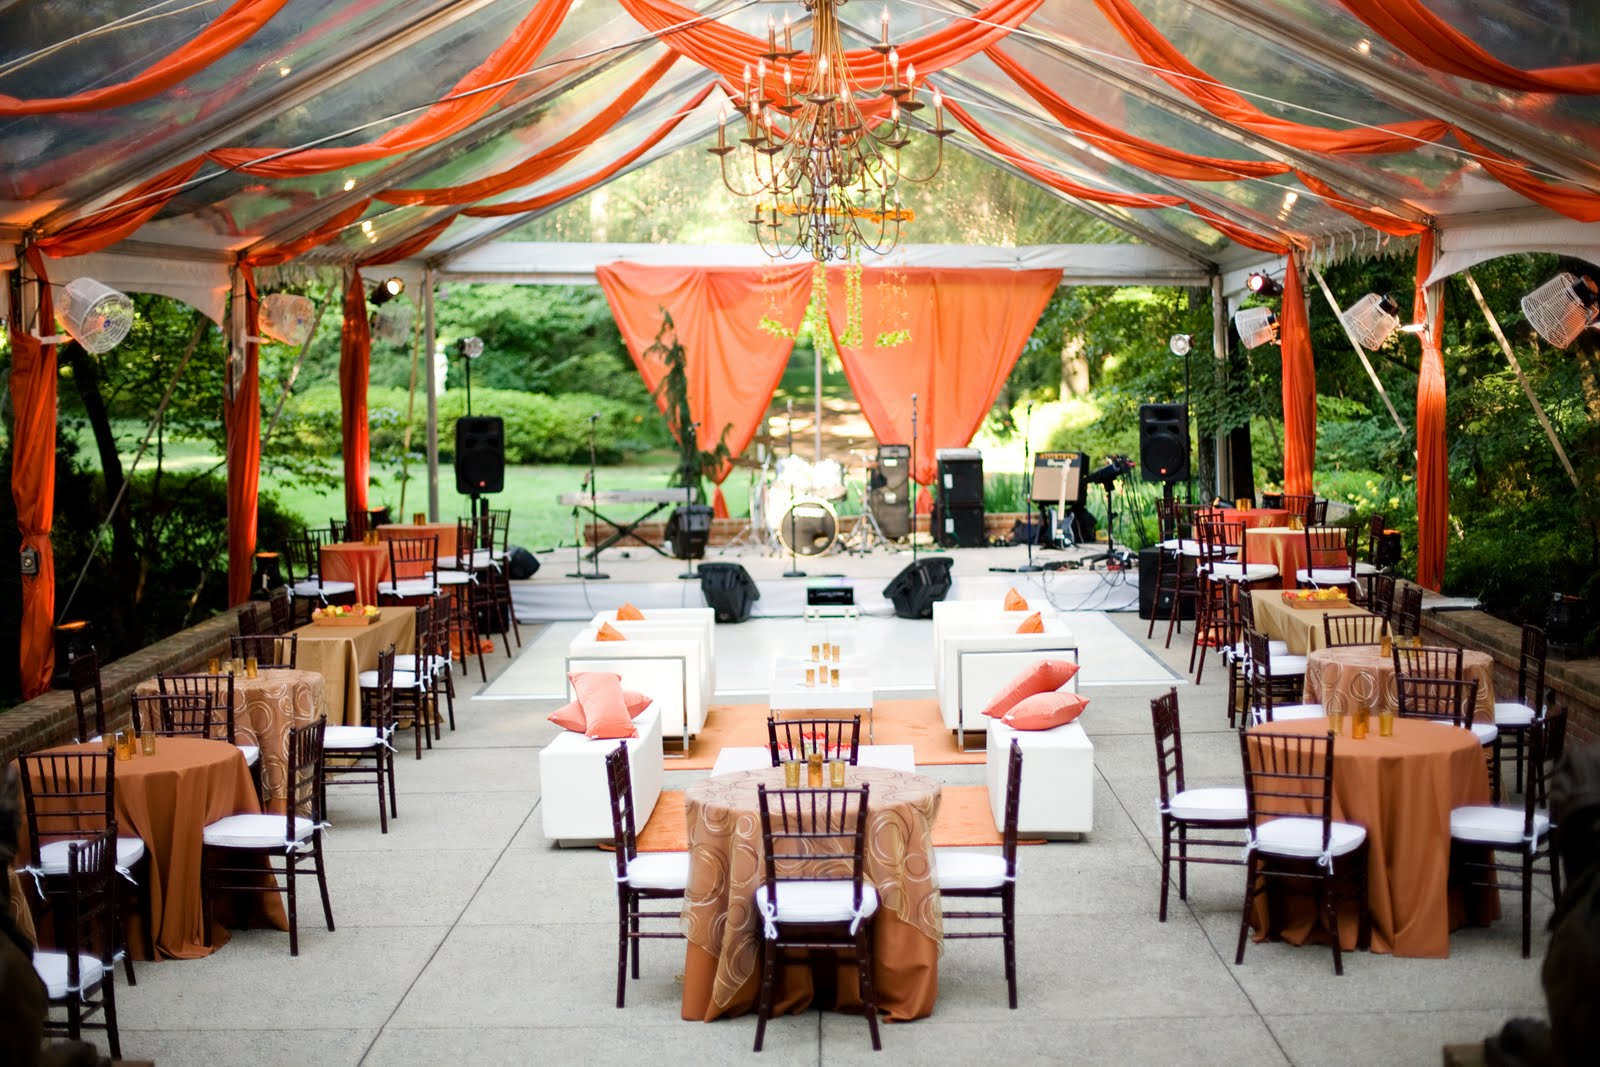 Chair Rental Louisville Ky Used Lift Chairs Daily Wedding Bits Tent Inspiration